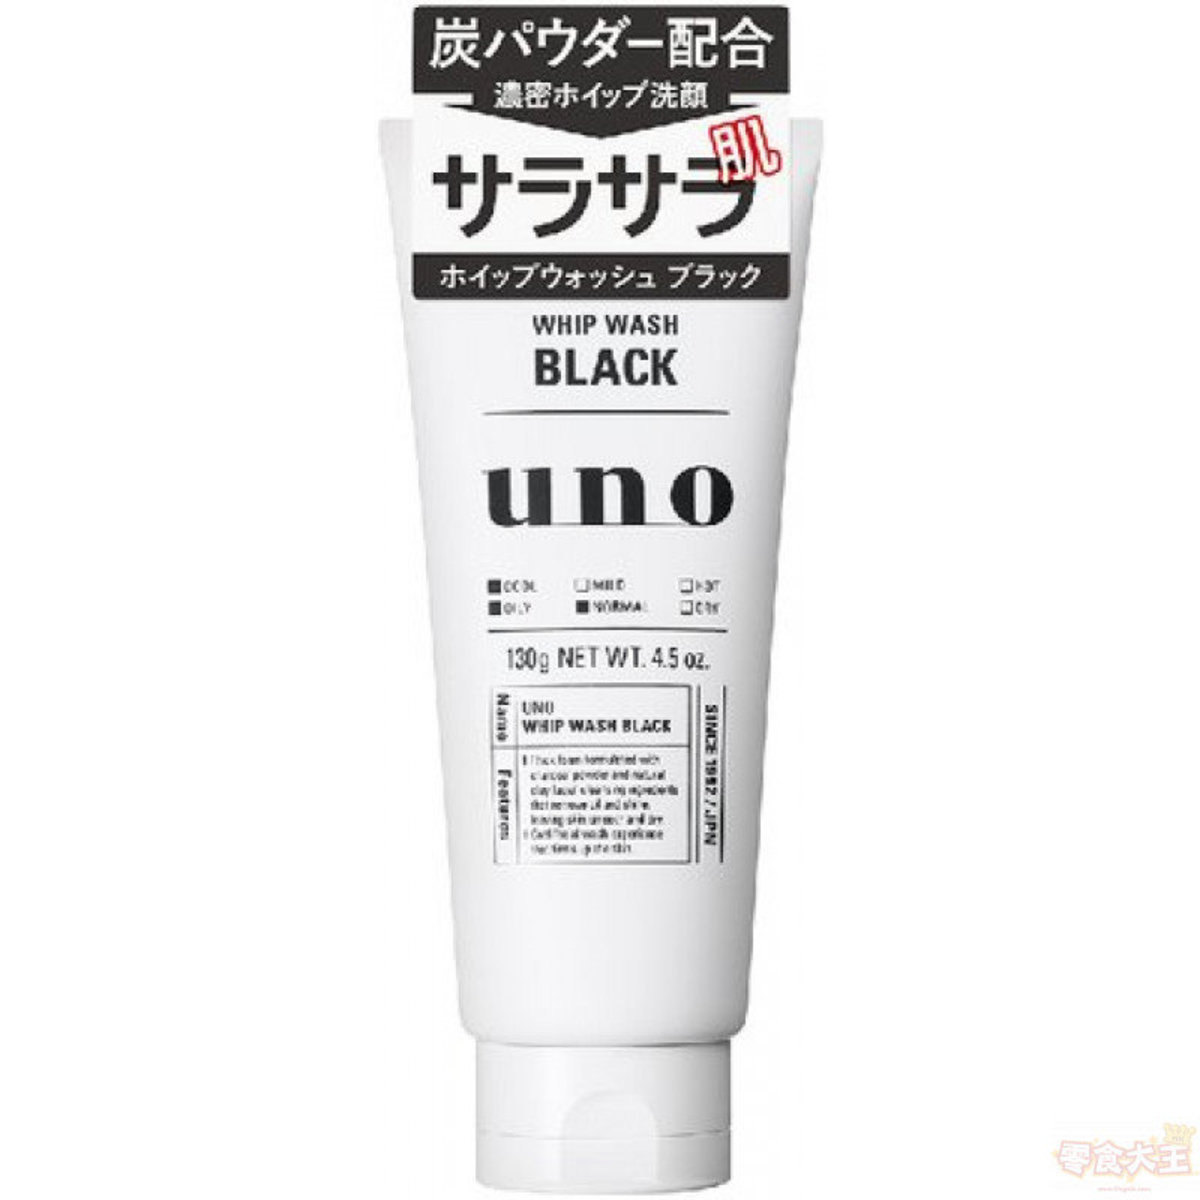 Uno Whip Wash (Black) 130g [Parallel Imports]